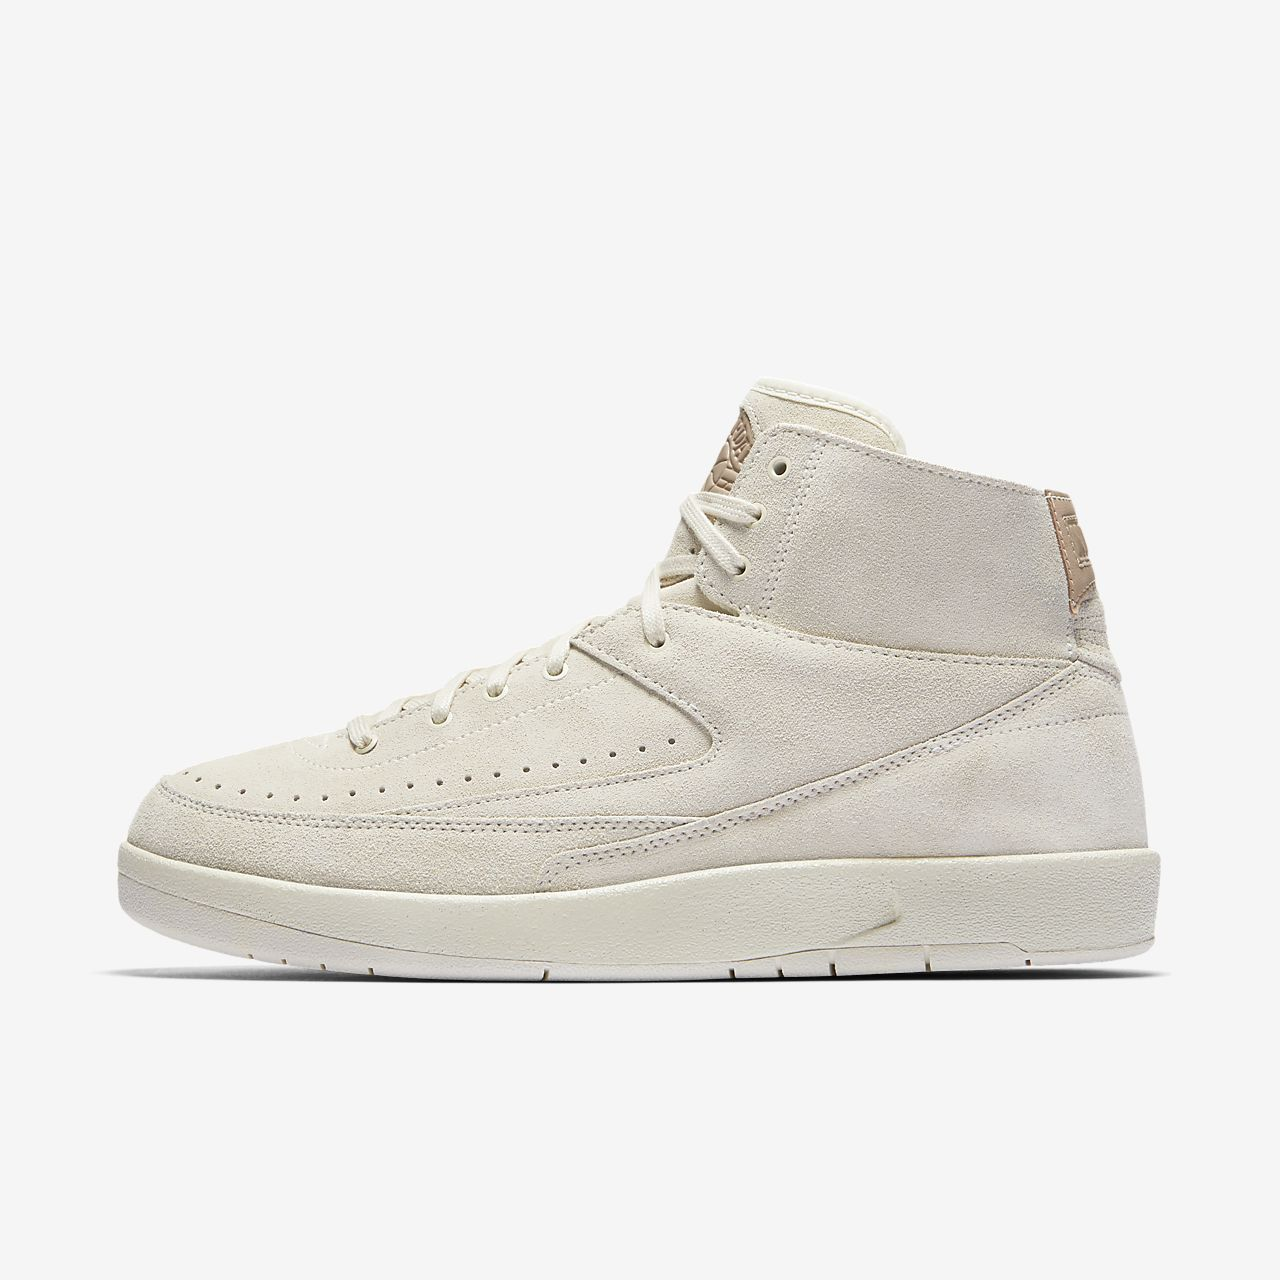 5ad8c61b6ed0e9 Air Jordan 2 Retro Decon Men s Shoe. Nike.com BE